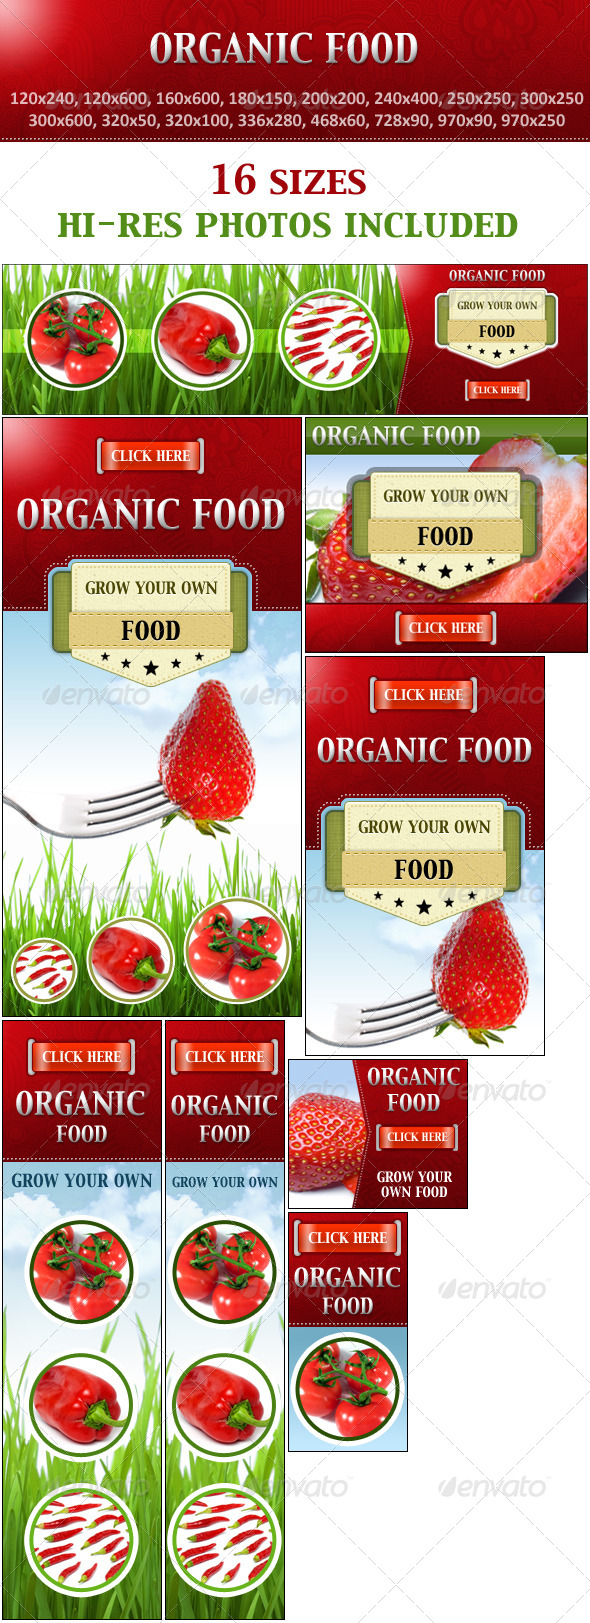 GraphicRiver Organic Food Grow Your Own Food 7876943